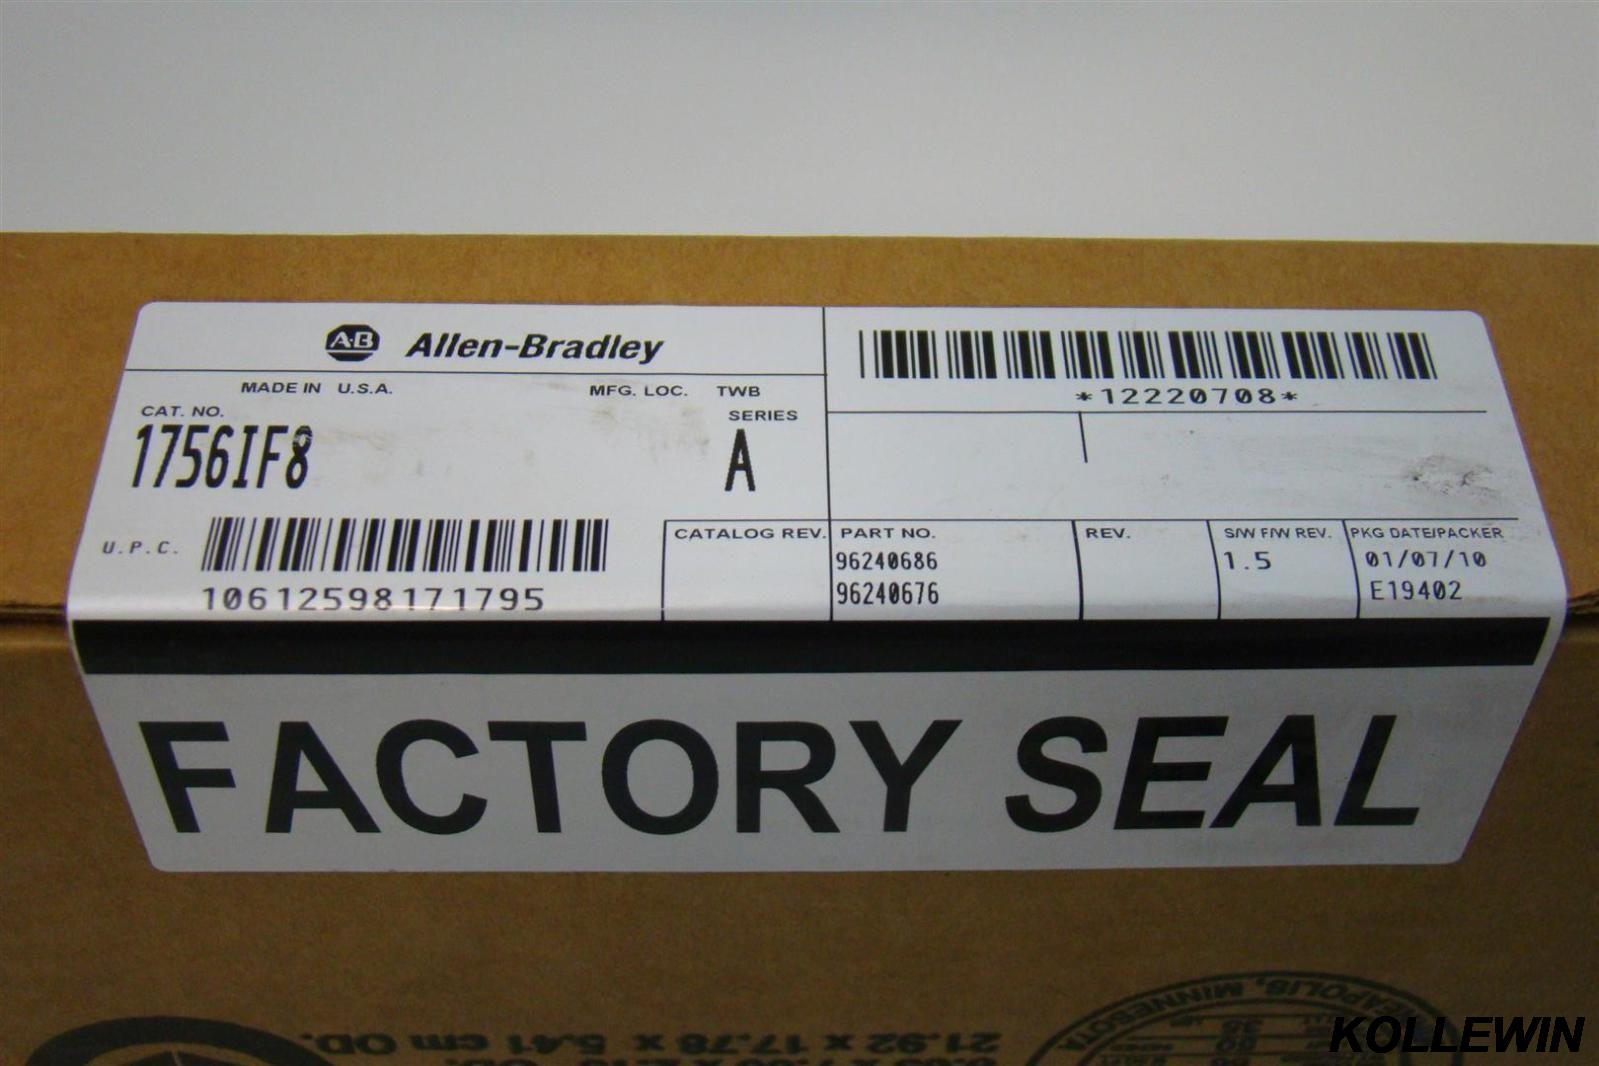 New Original Allen Bradley 1756-IF8 ControlLogix 8 Point A/I Module 1756-IF8 PLC module 1756 IF8 factory sealed 1 year warranty allen bradley 1756 a10 1756a10 controllogix communication module new and original 100% have in stock free shipping